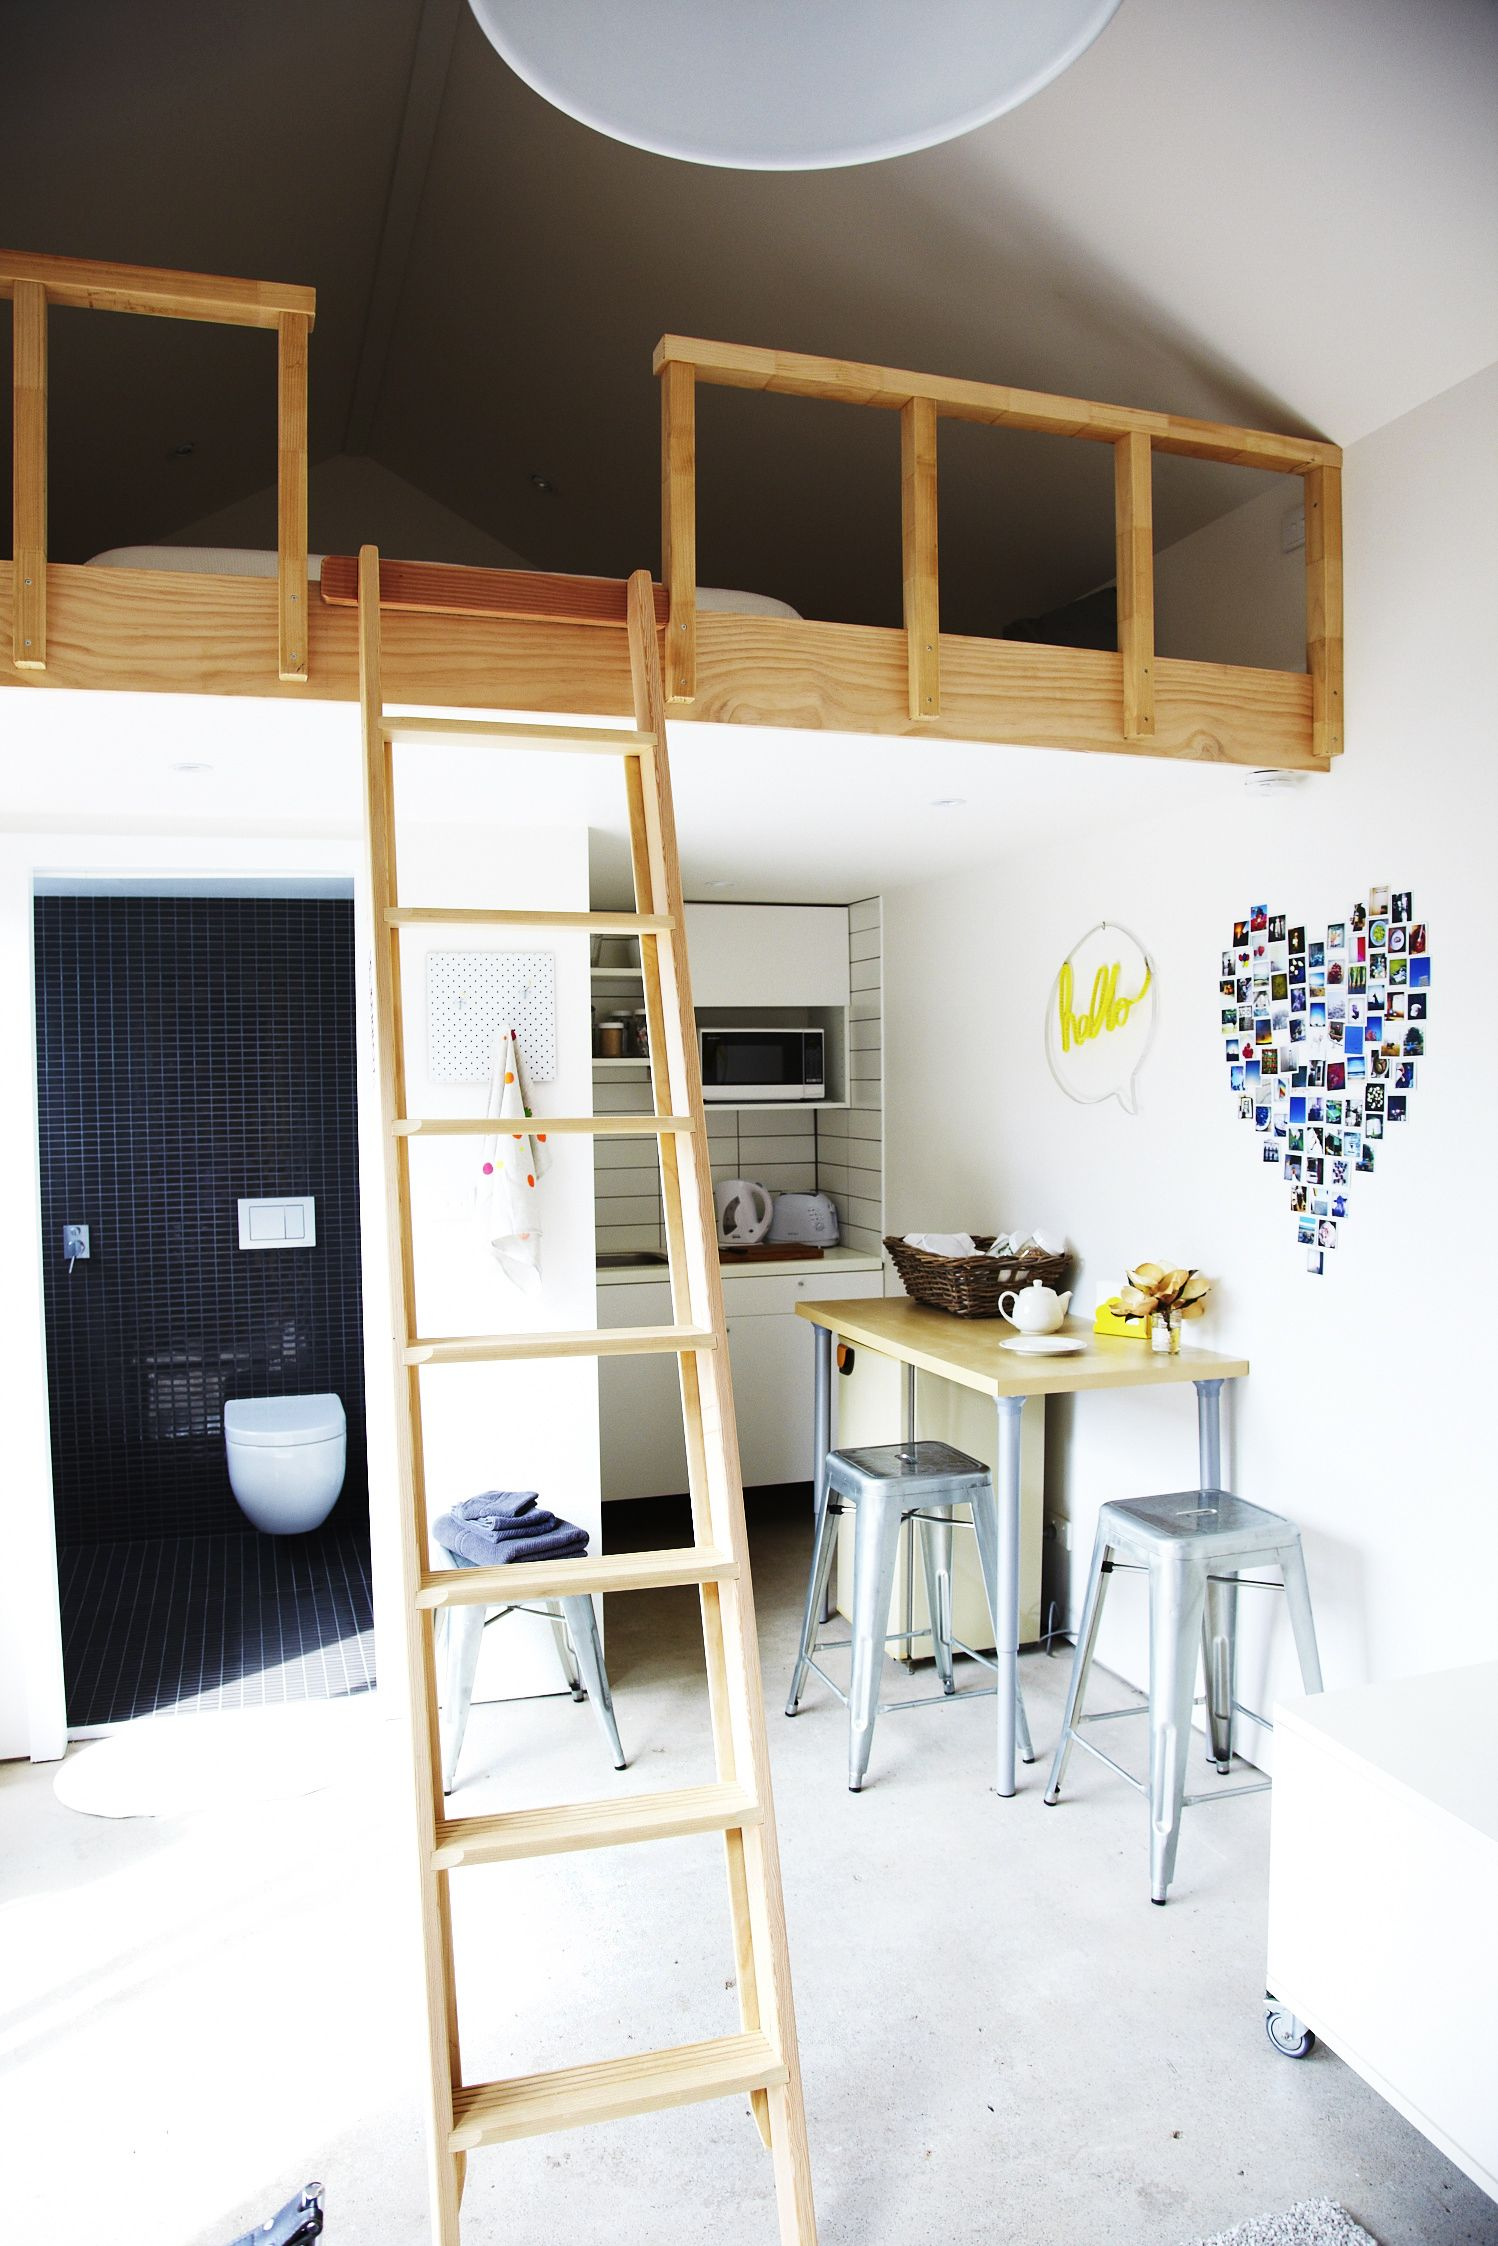 The Garden Studio With Loft Bed Loft Bed Studio Apartment